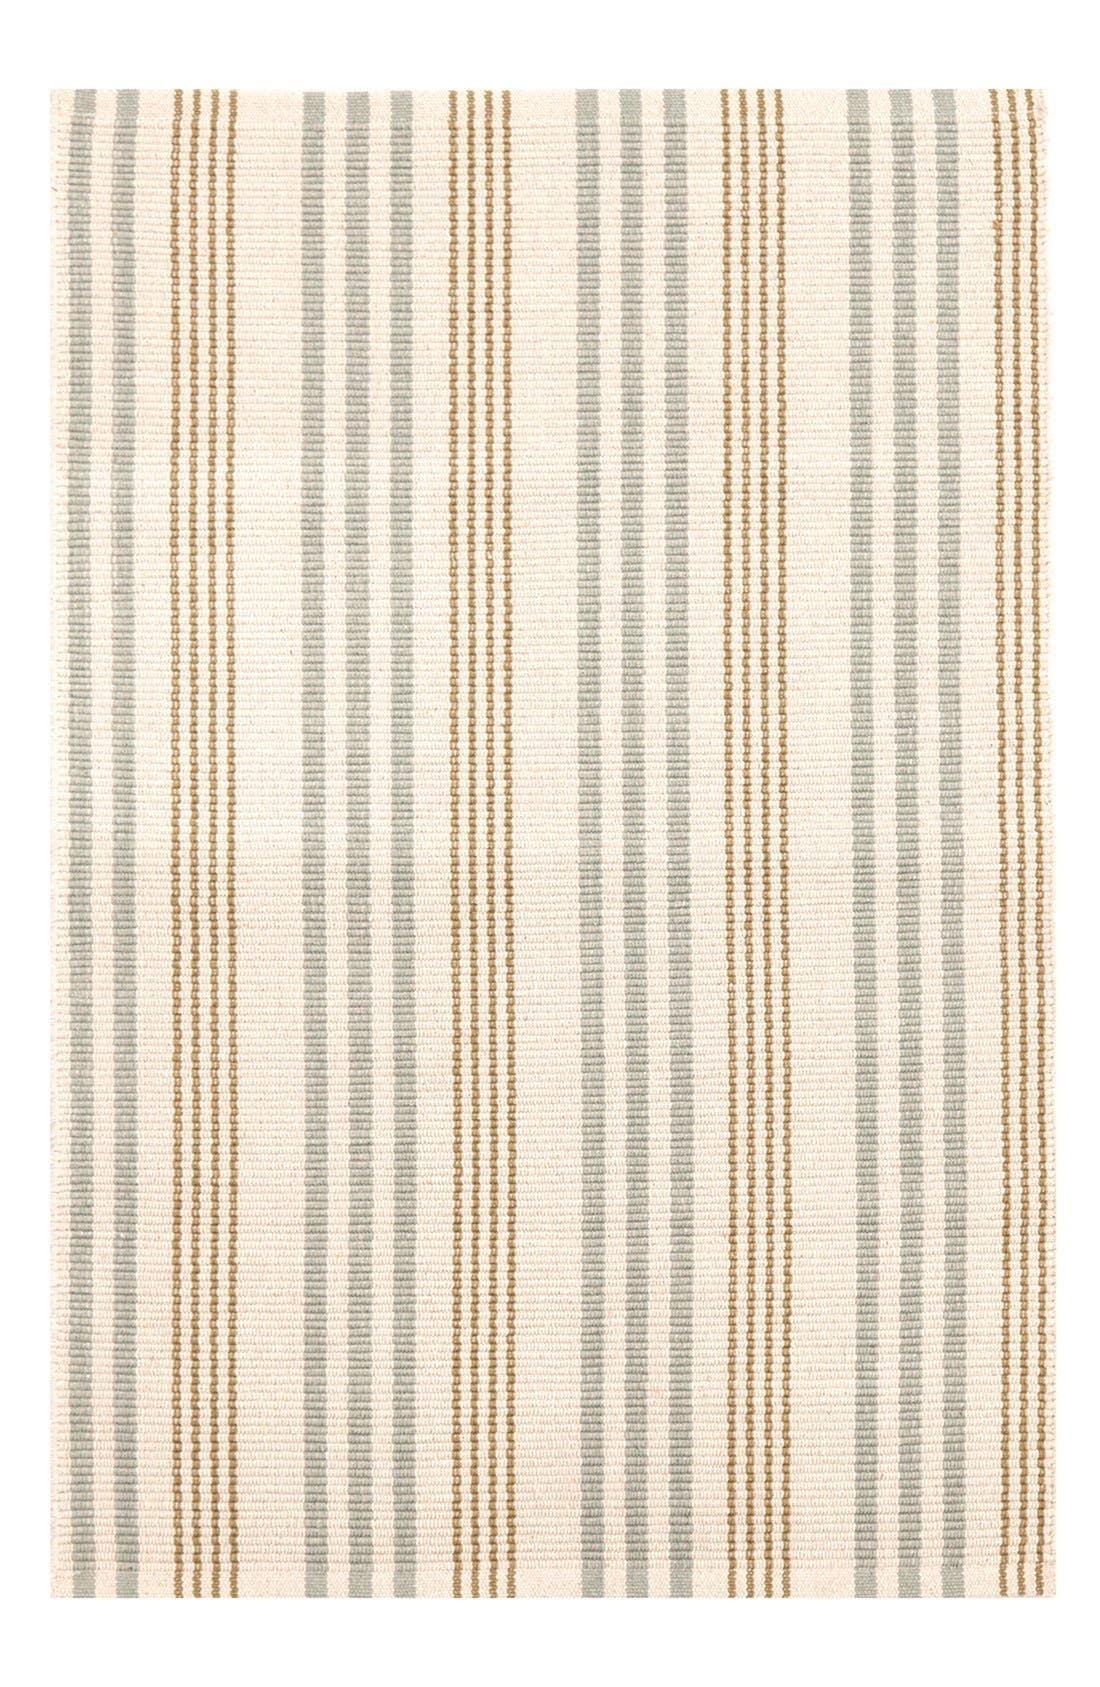 'Olive Branch' Rug,                             Main thumbnail 1, color,                             BEIGE/ MULTI